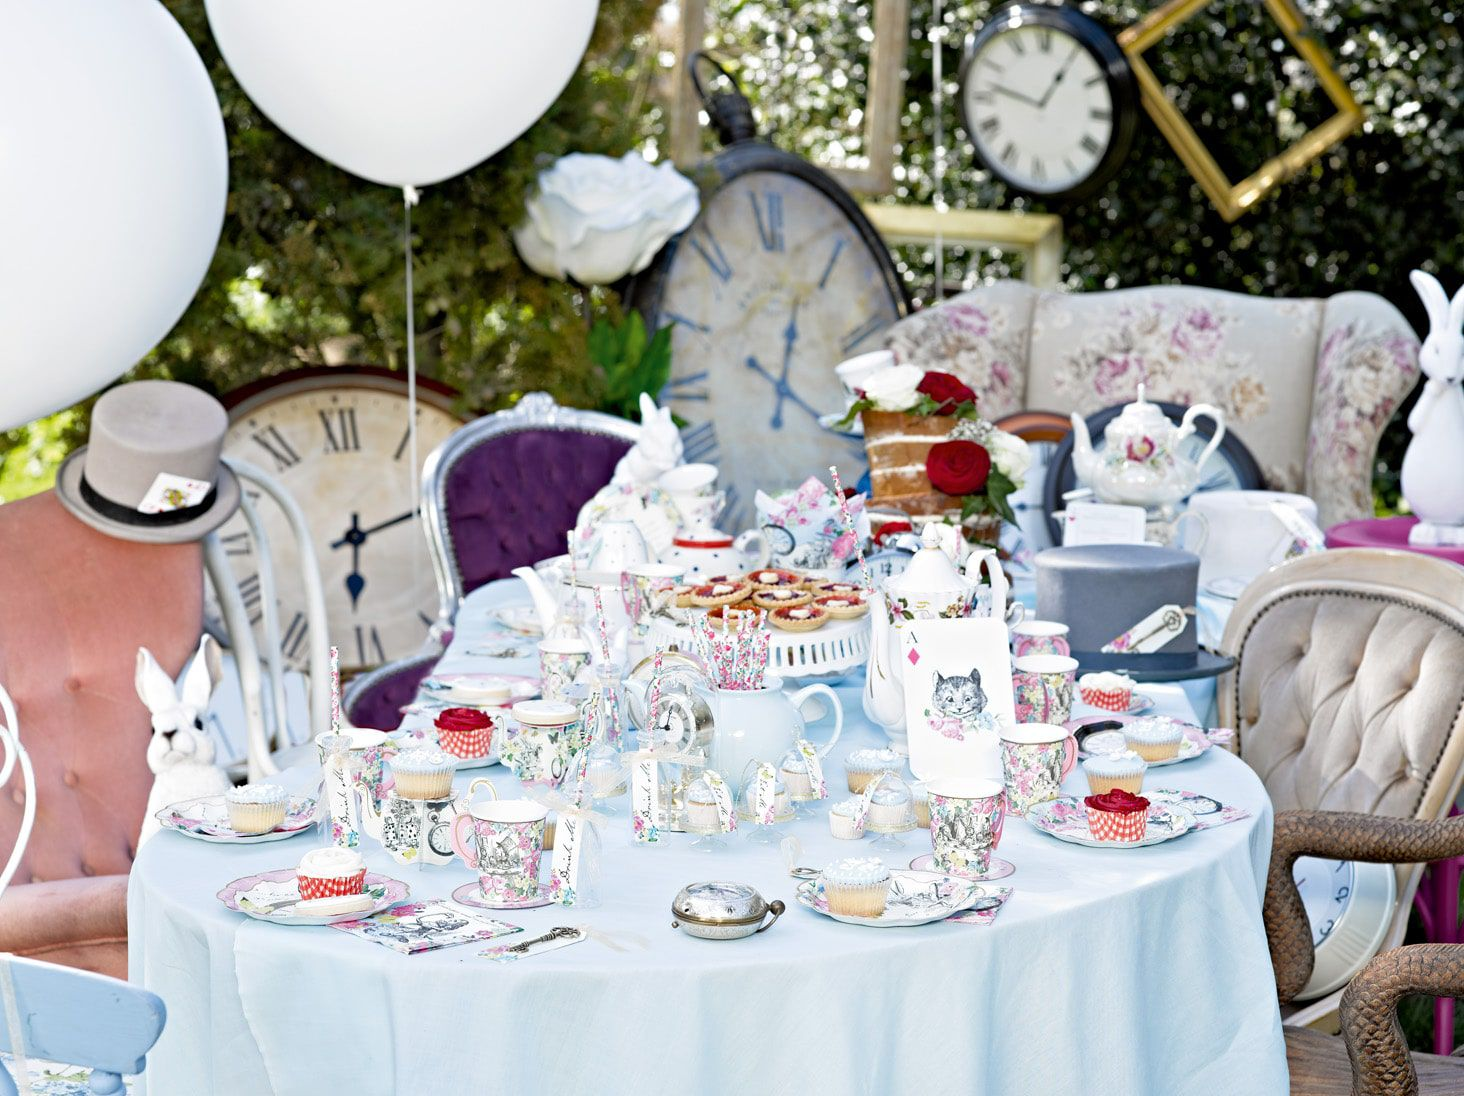 Alice in Wonderland Party Ideas | Throw an Alice in Wonderland Tea Party with ideas for Food, Decorations & Fancy Dress